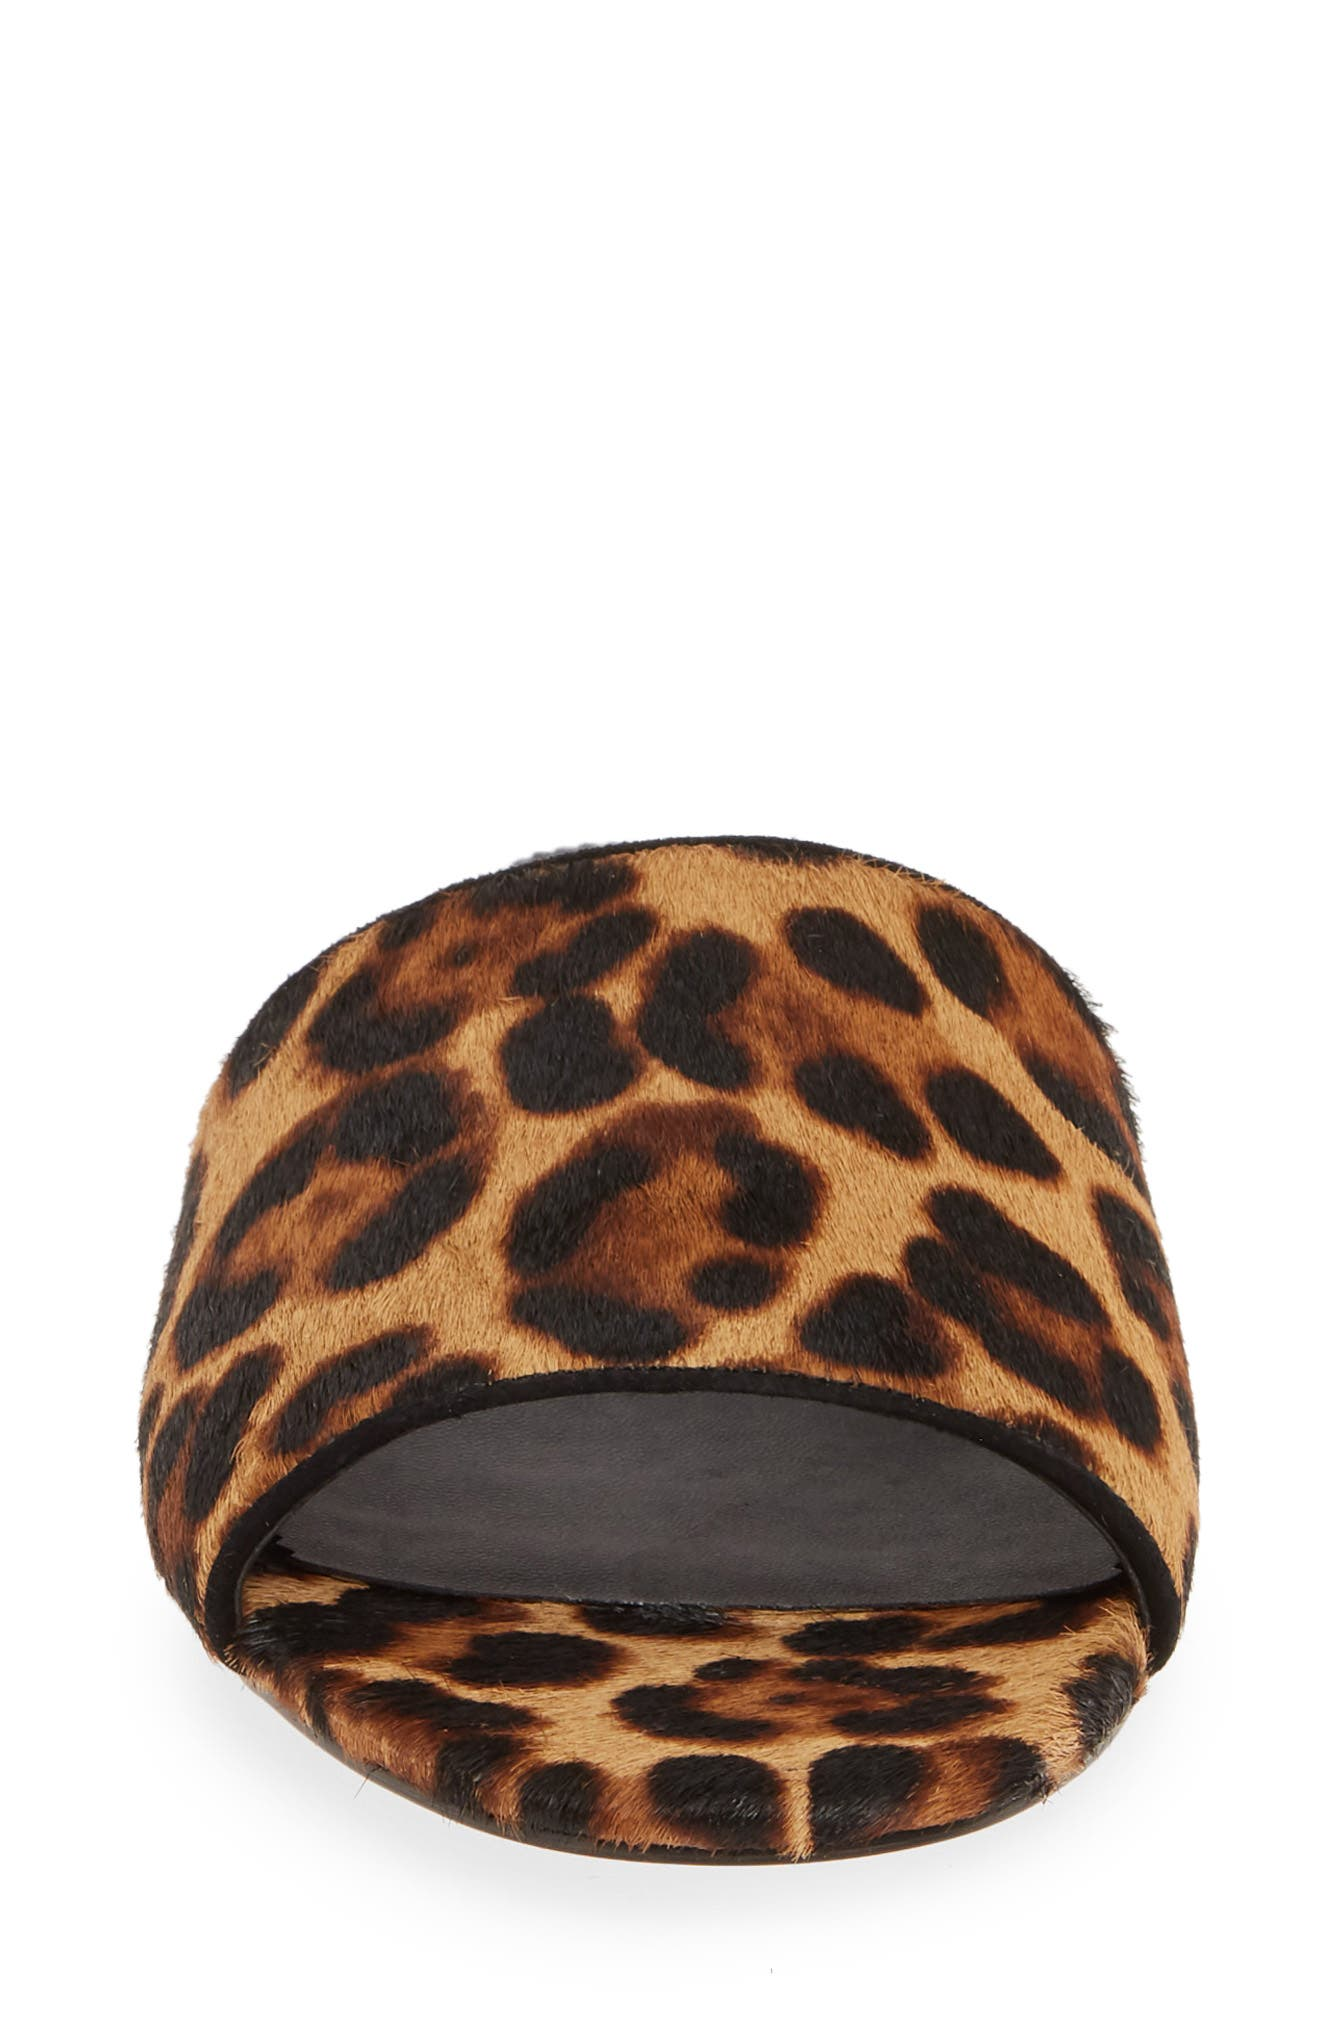 J.CREW, Cora Leopard Print Calf Hair Slide Sandal, Alternate thumbnail 4, color, LEOPARD PRINT CALF HAIR